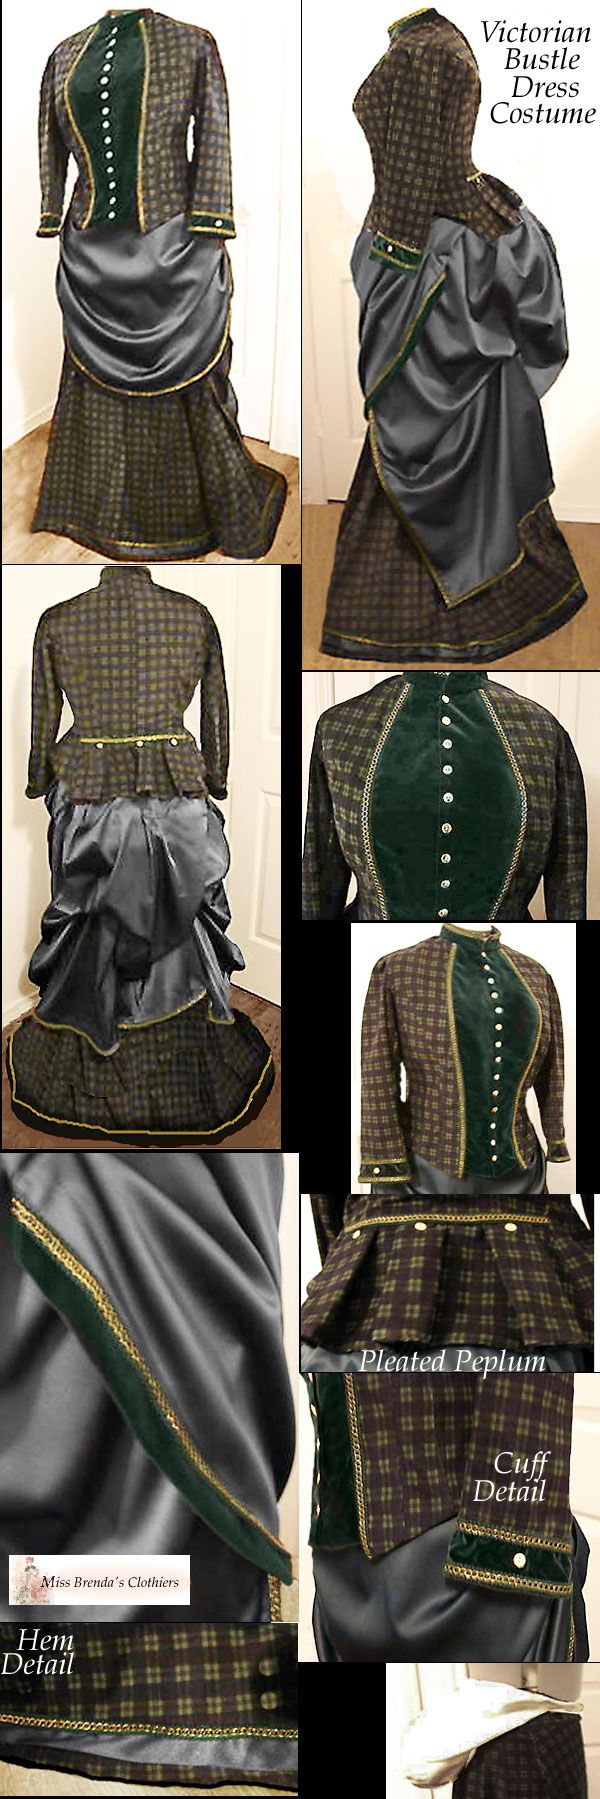 1886 Victorian Bustle dress costume reproduction with VELVET and plaidVictorian Bustle Gowns